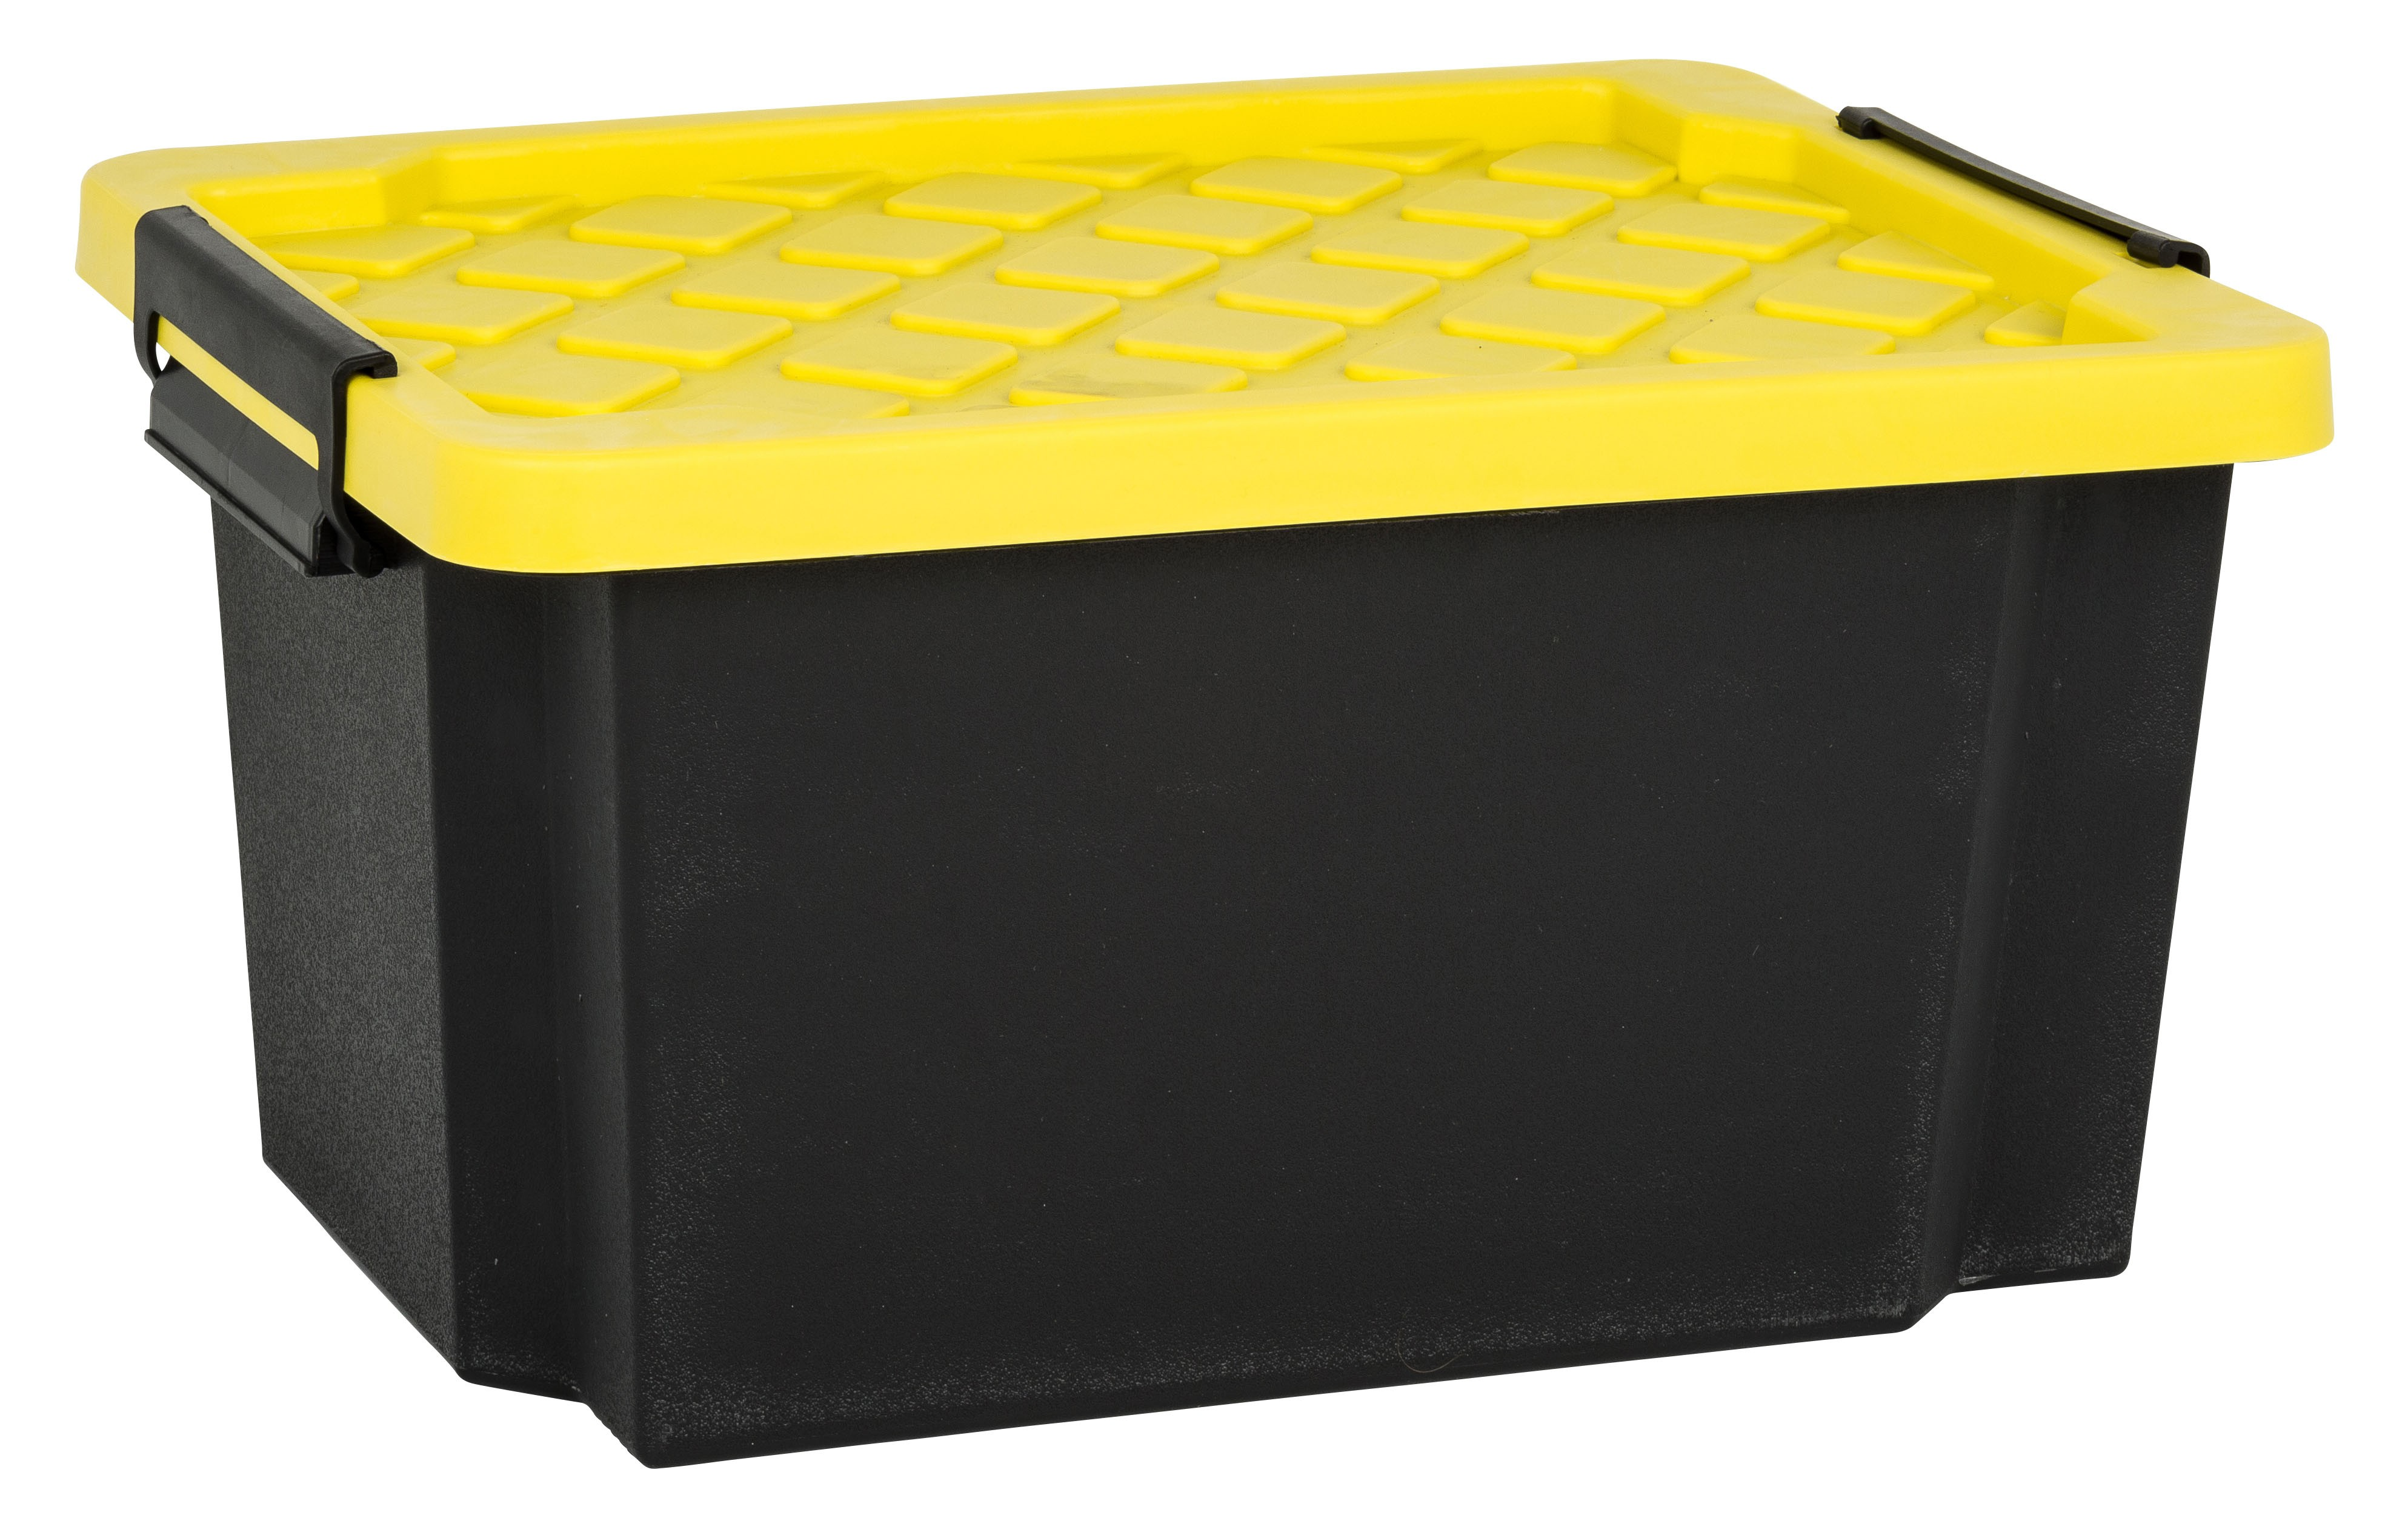 Cutlery Storage With Lid Of Trunk Box 25l With Lid From Storage Box